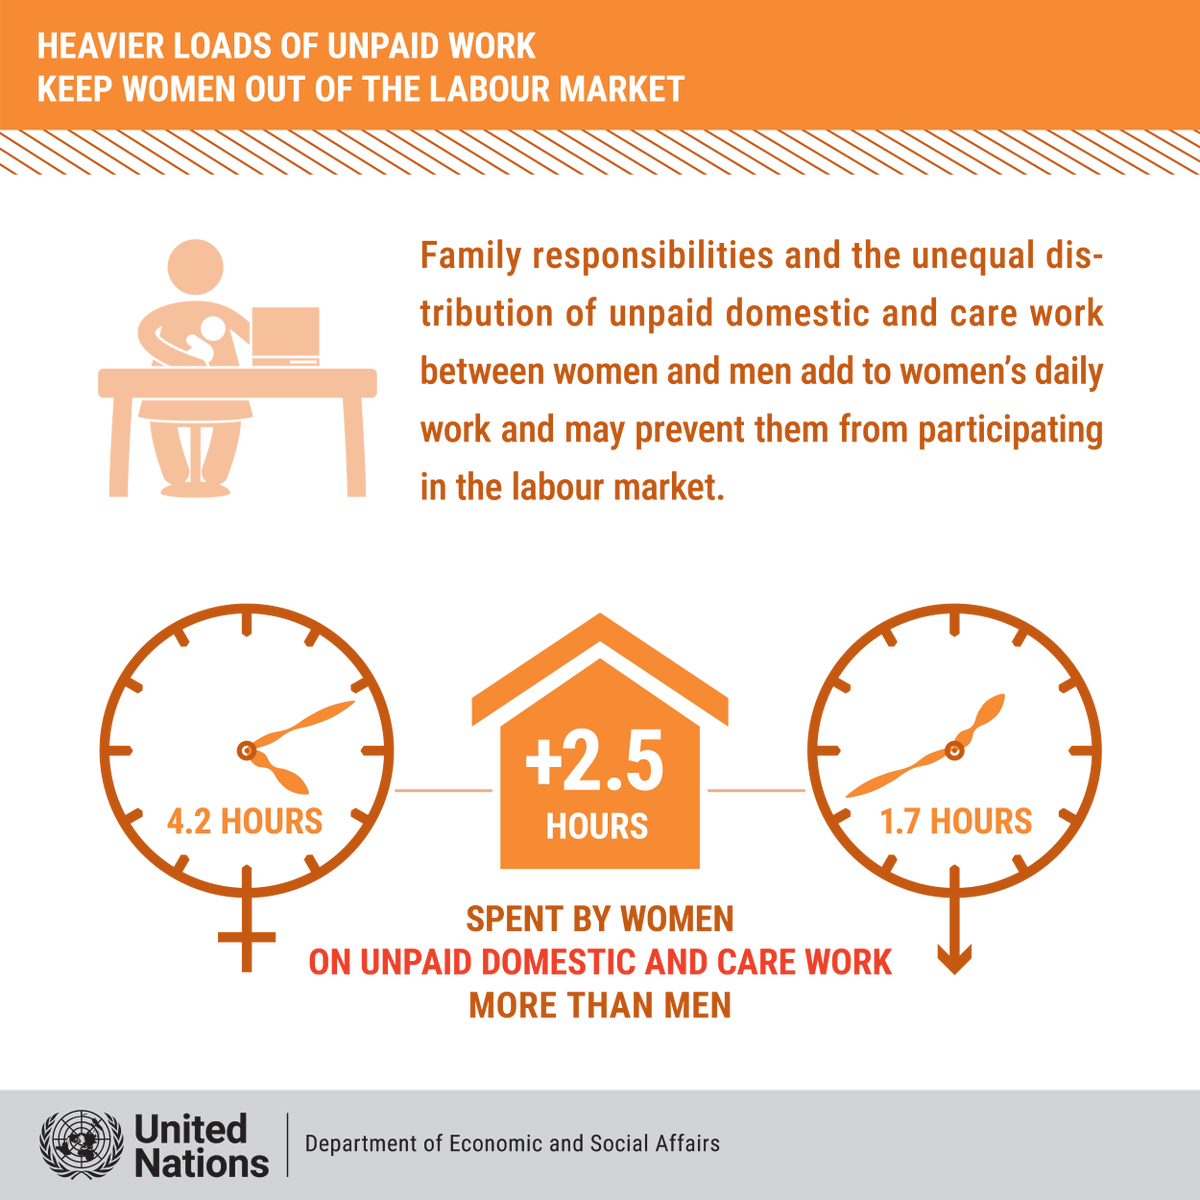 Every day, women spend 2.5 hours more than men doing unpaid domestic & care work.   #COVID19 has placed additional pressures on women, often with negative impacts on their well-being.   More from @UNDESA. https://t.co/rWuBKsmCIs https://t.co/wvjYSAkb6r